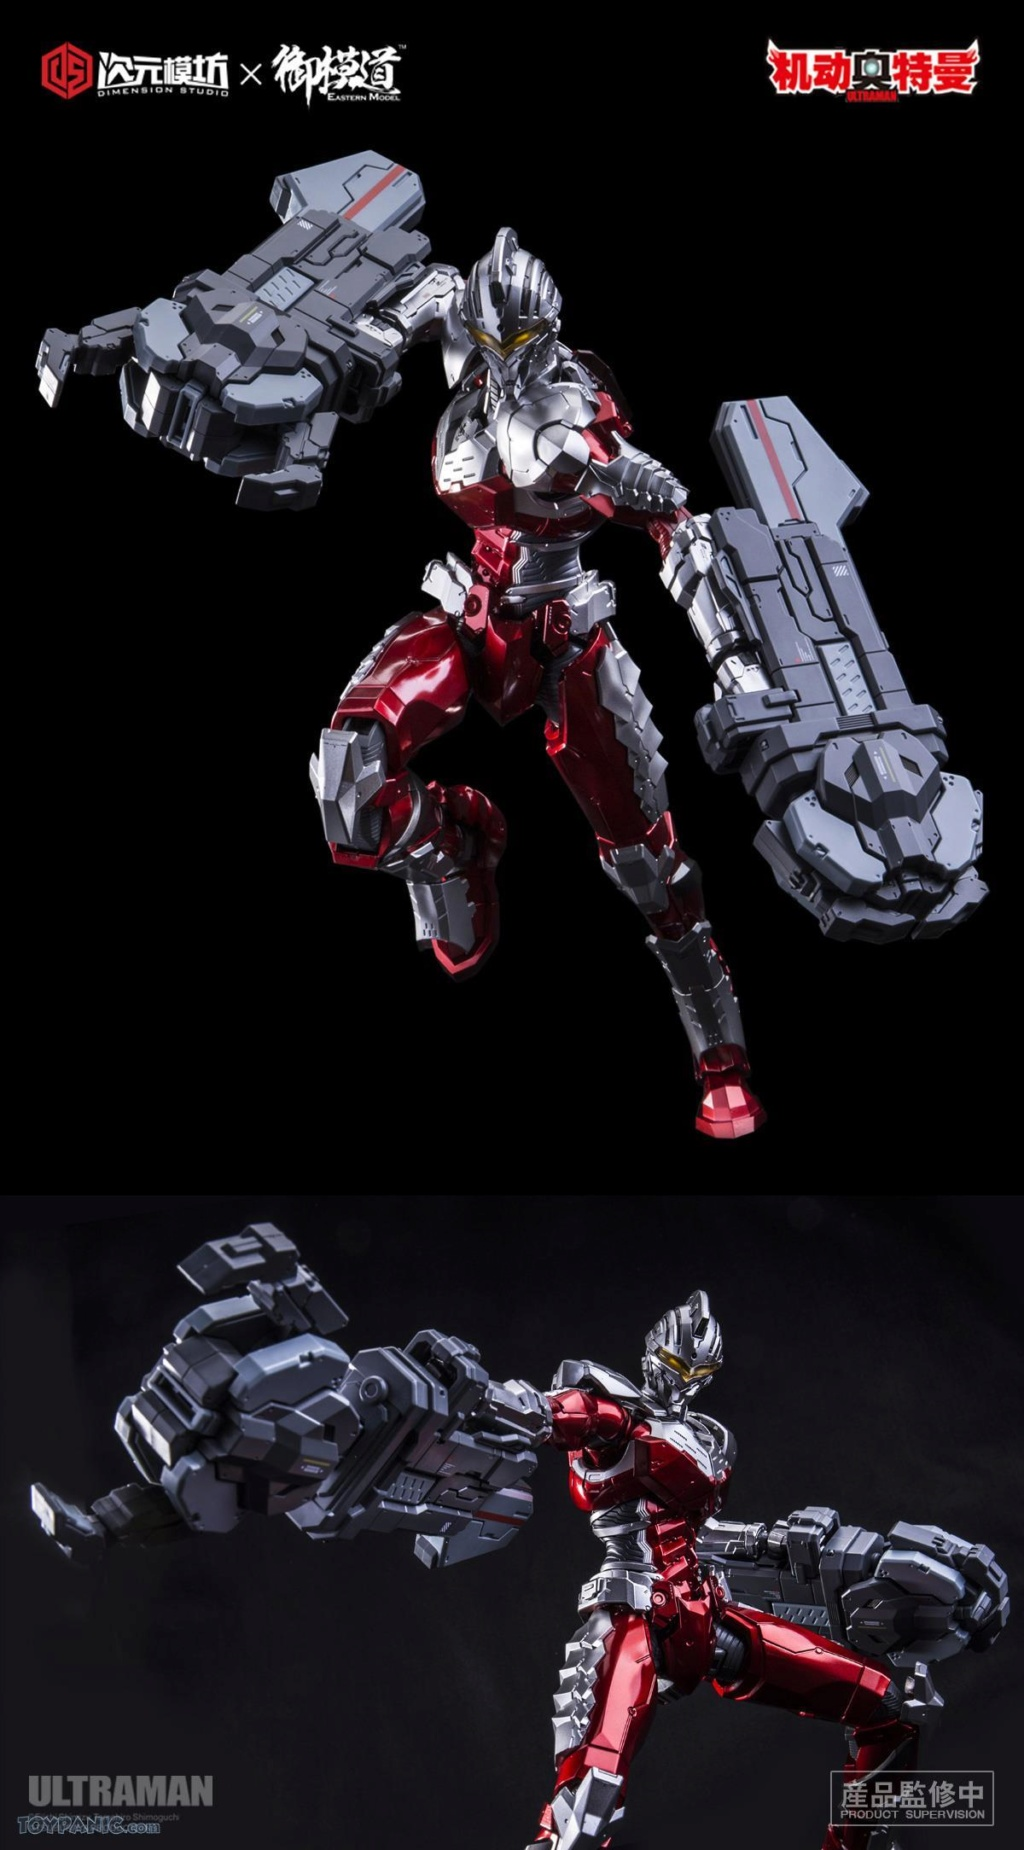 Ultraman - NEW PRODUCT: Dimension Studio X Model Principle: 1/6 Ultra Seven Suit Ver. 7.0 Action Figure  15201914